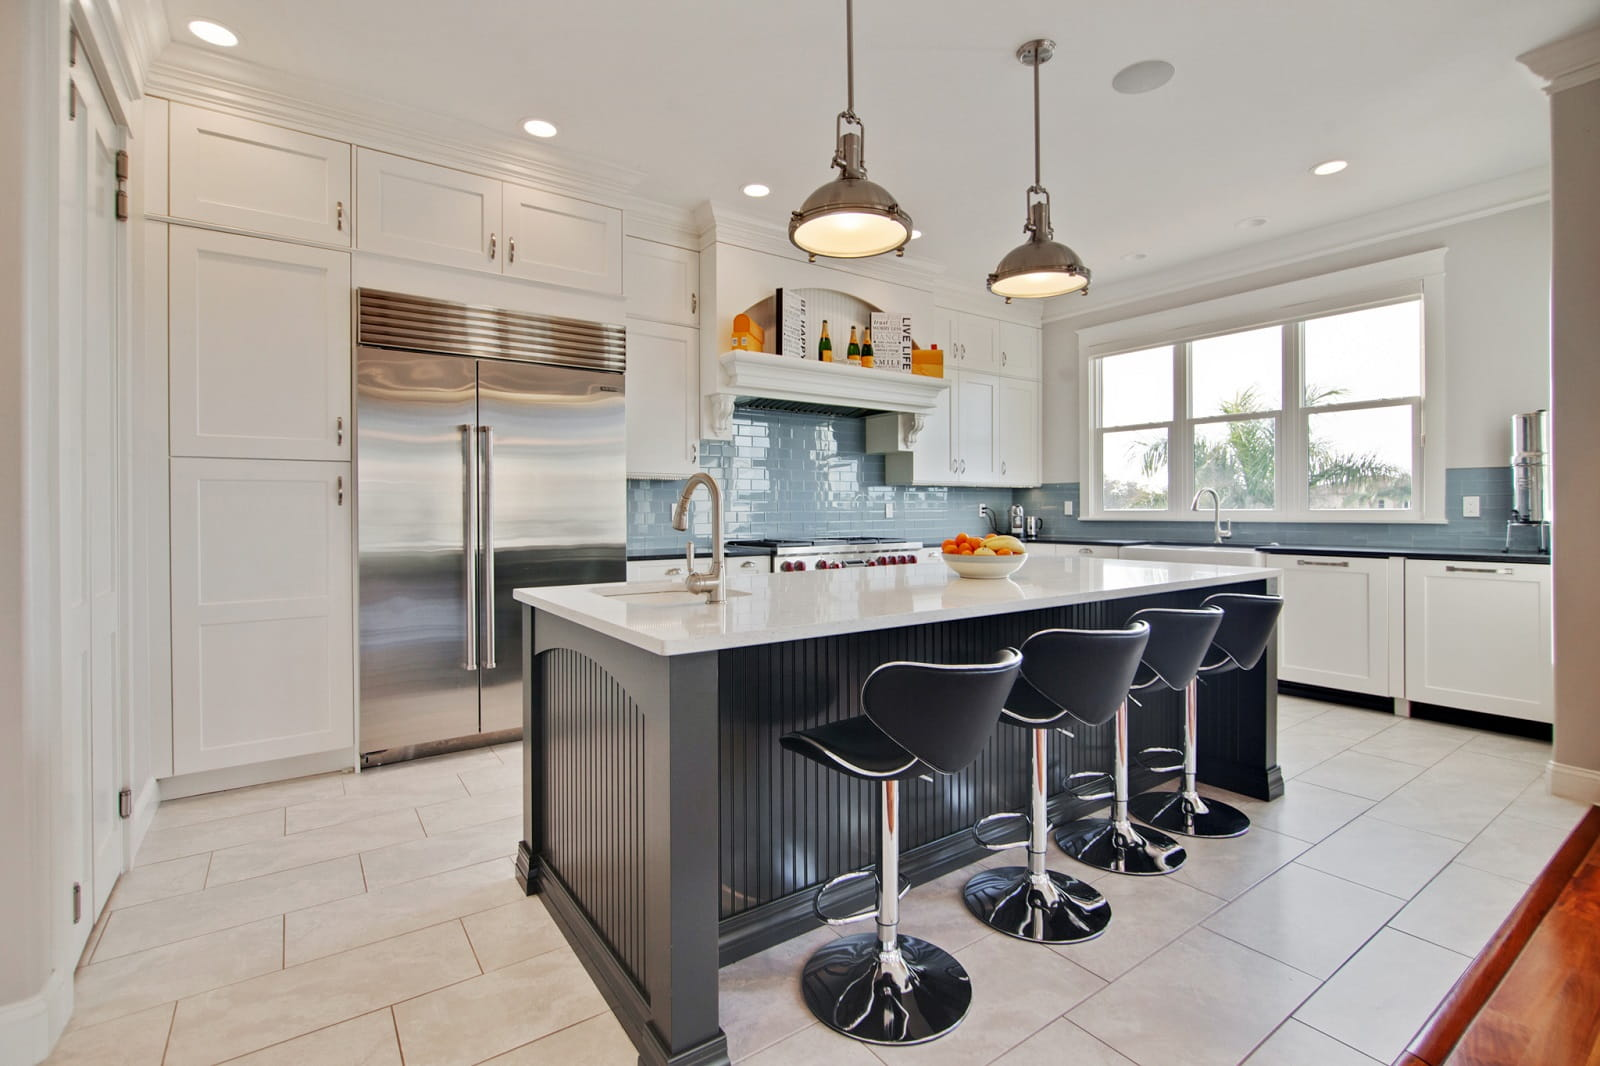 Real Estate Photography in St. Petersburg - FL - USA - Kitchen View